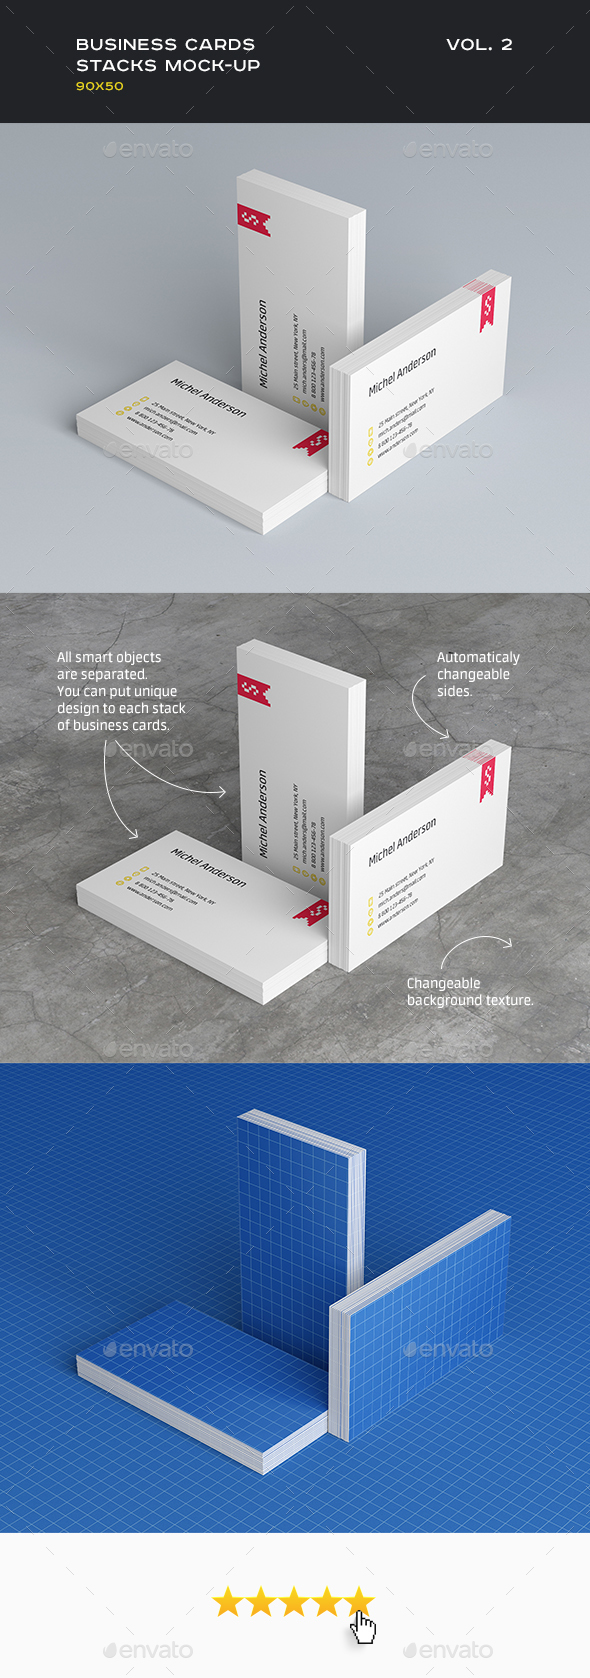 Business cards mock up 90x50 by shumchuk graphicriver business cards mock up 90x50 business cards print reheart Choice Image